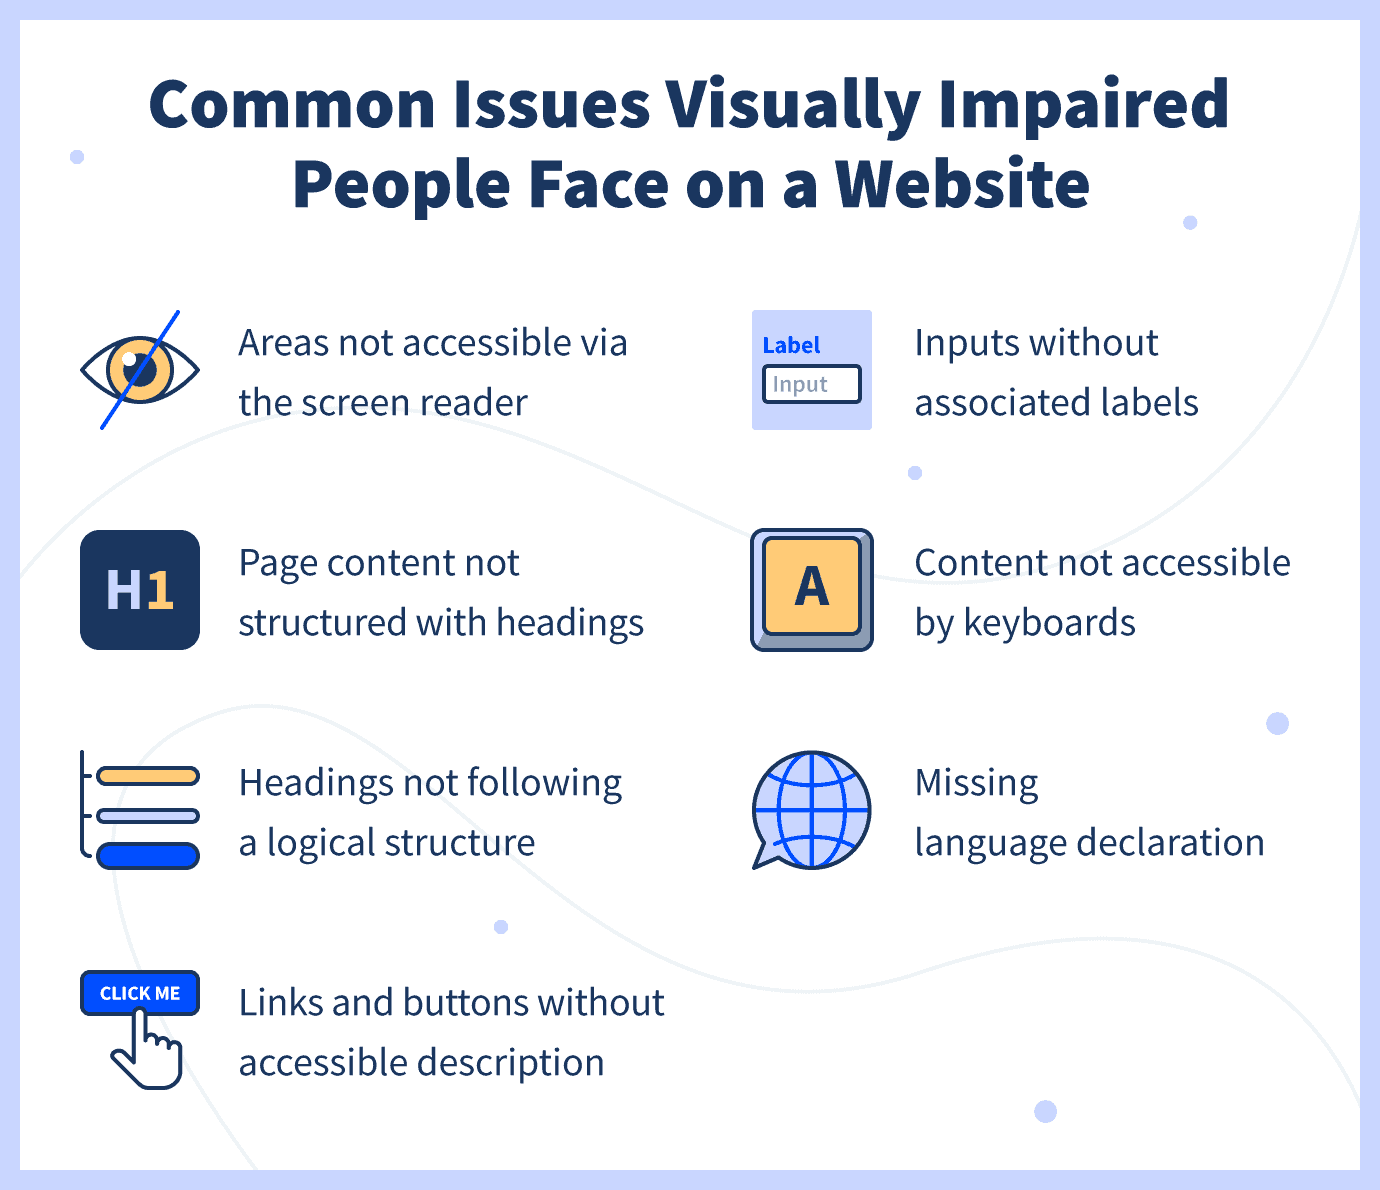 common issues visually impaired people face: Areas not accessible via the screen reader, Page content not structured with headings, Headings not following a logical structure, Links and buttons without accessible description, Inputs without associated labels, Content not accessible by keyboards, Missing language information